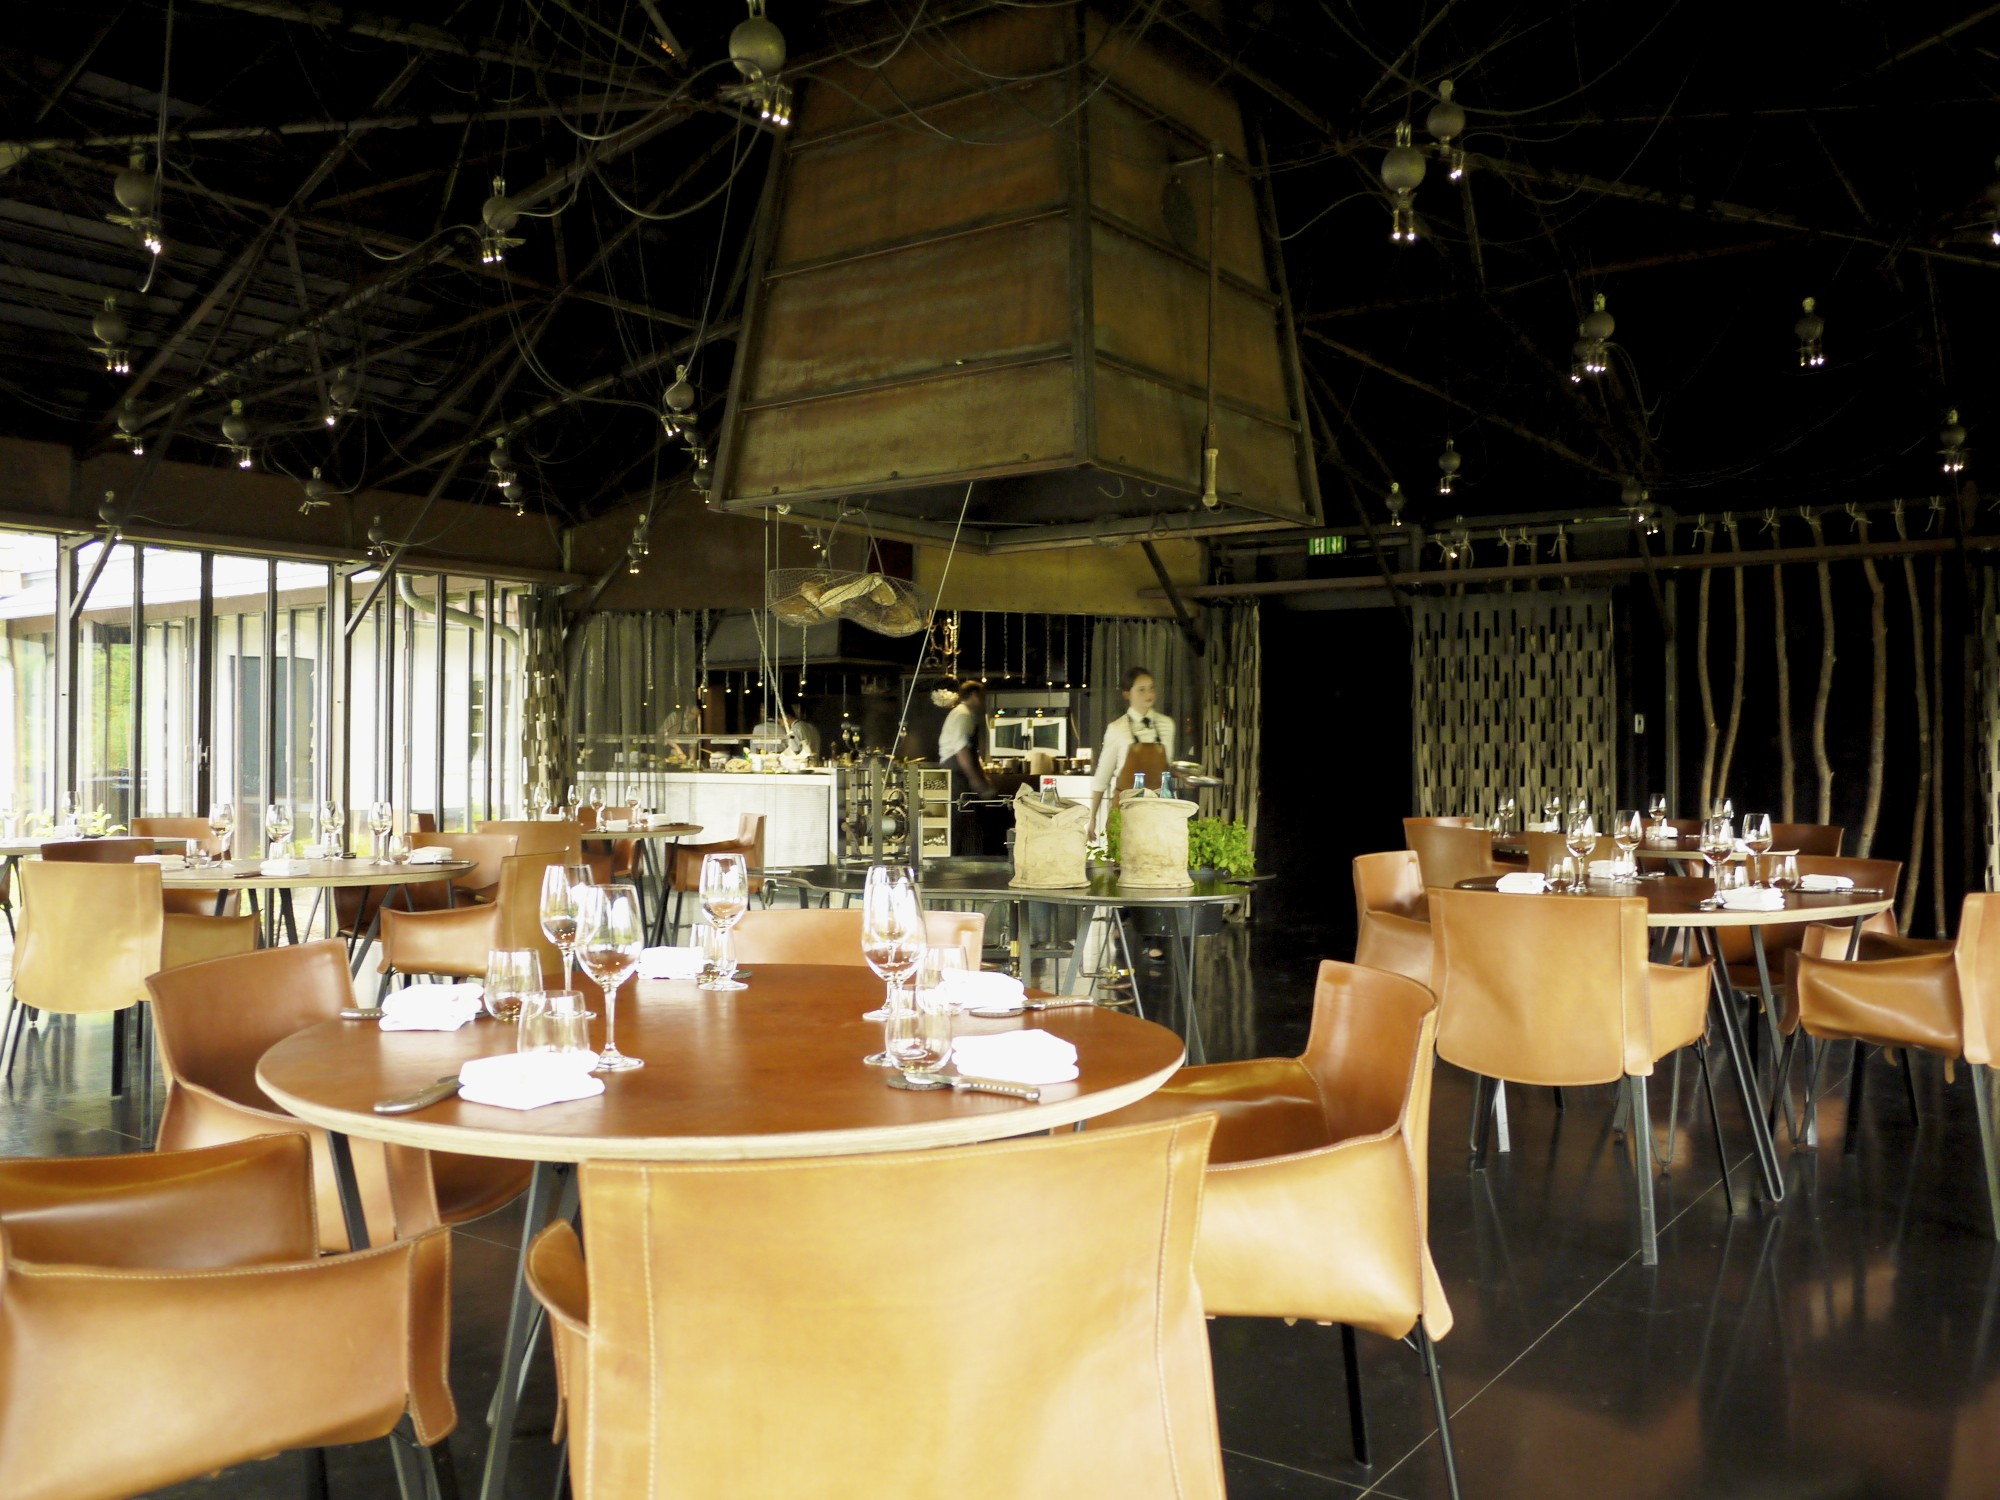 Grenouillere dining without borders for Auberge maison gauthier